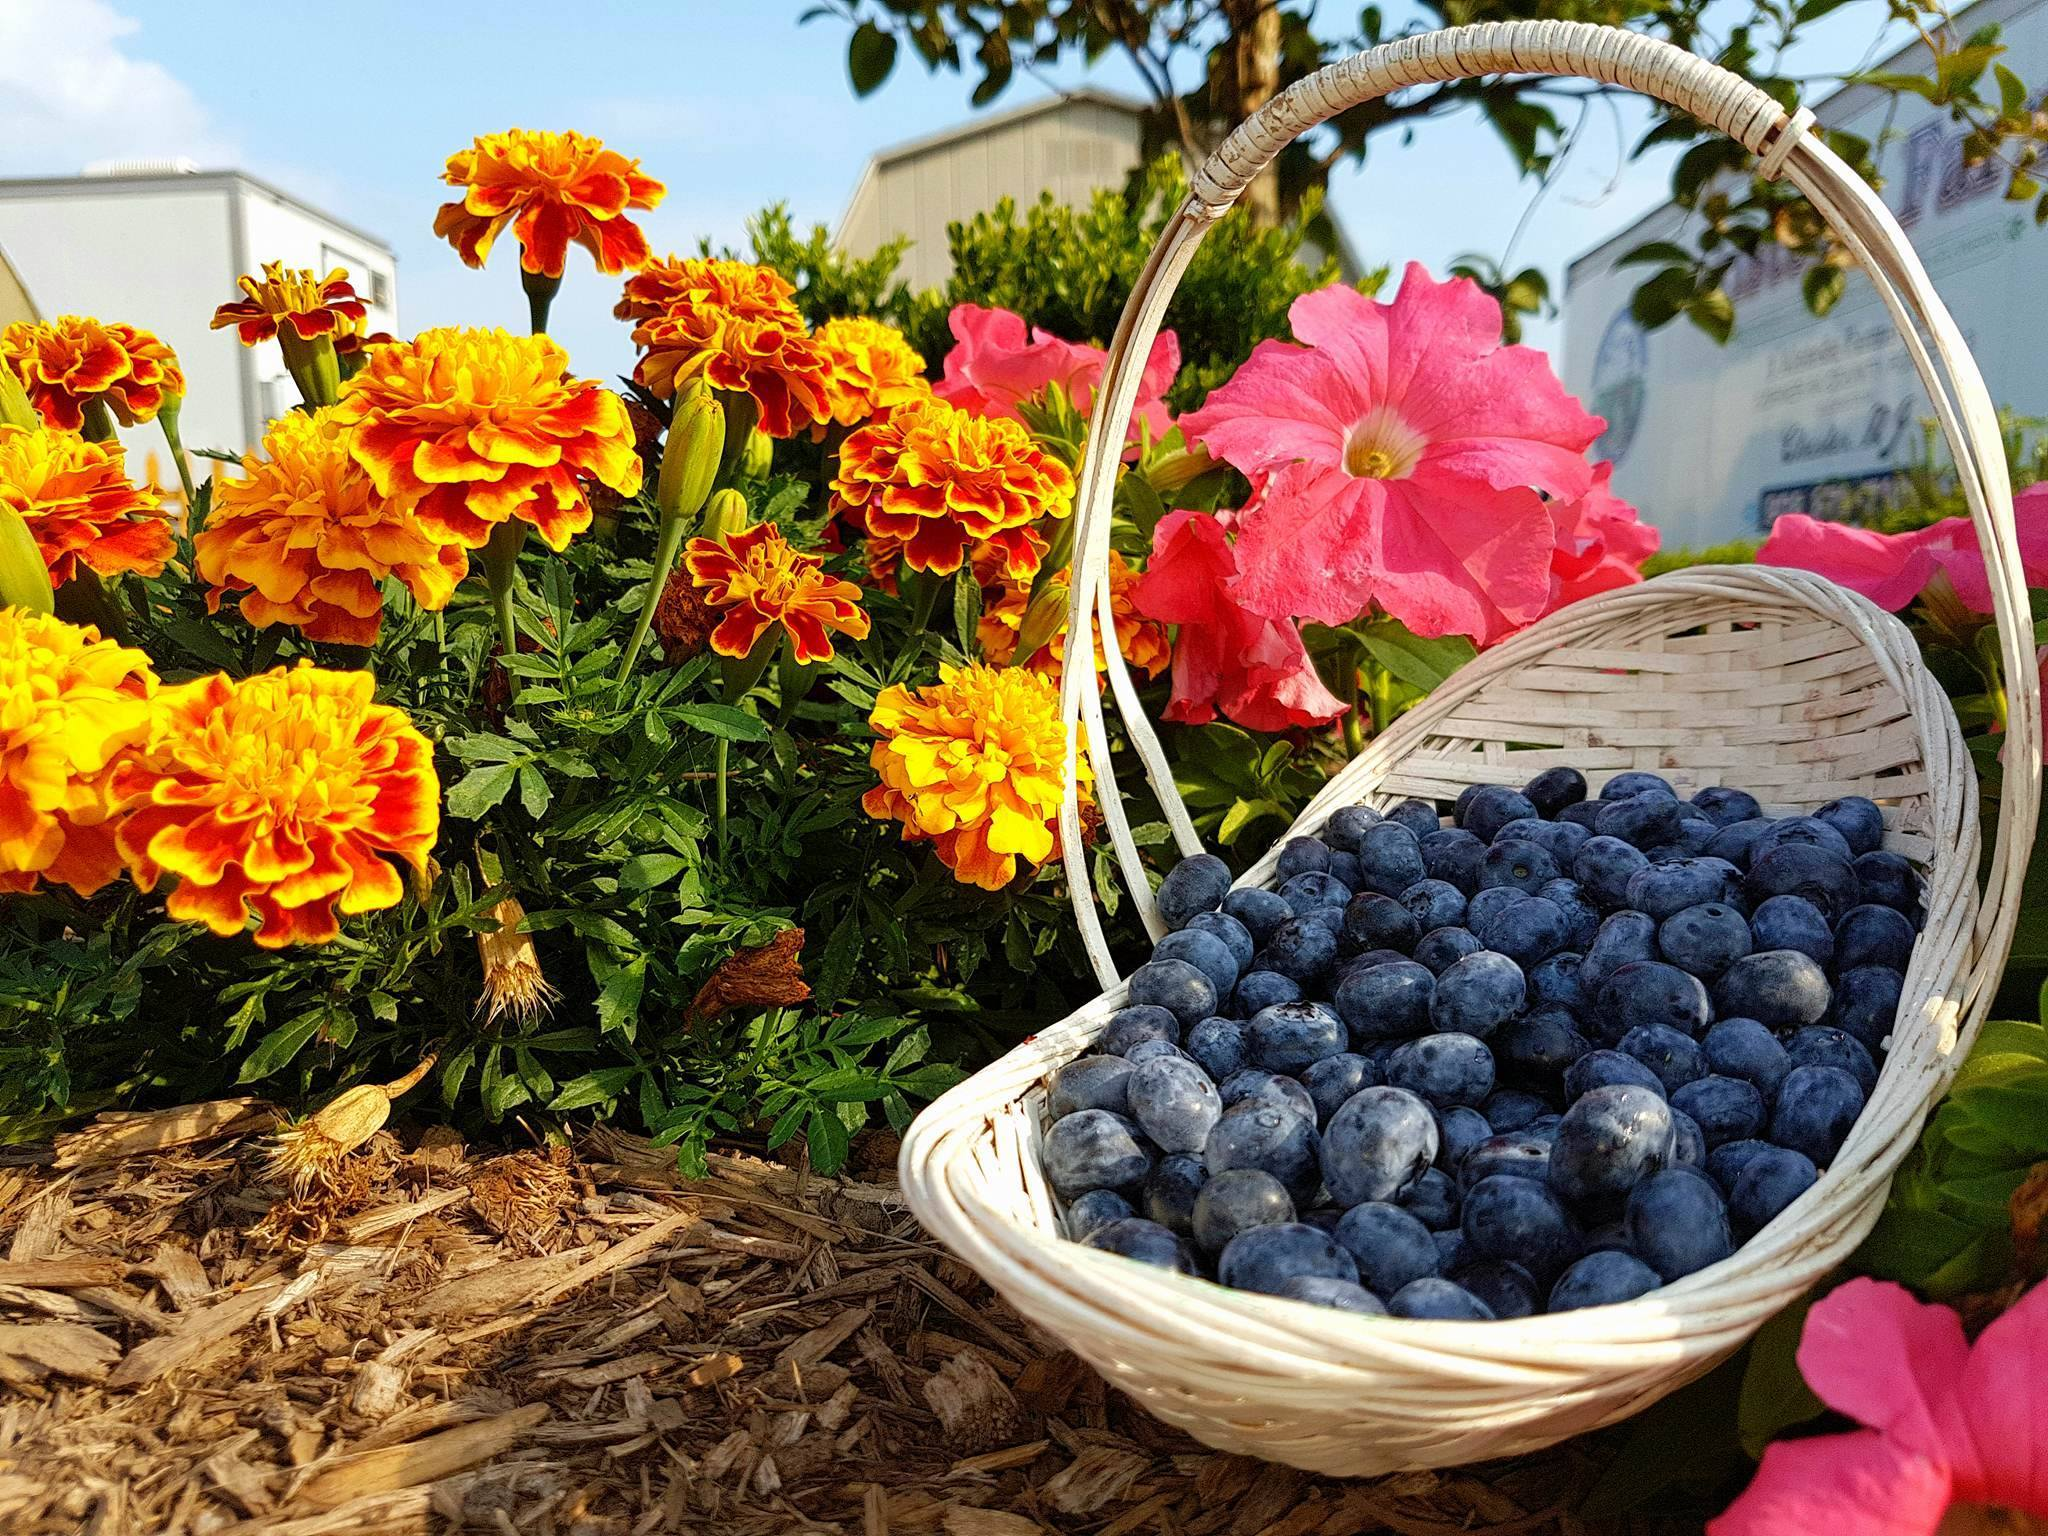 Where to Pick Your Own Blueberries, Raspberries, and ...